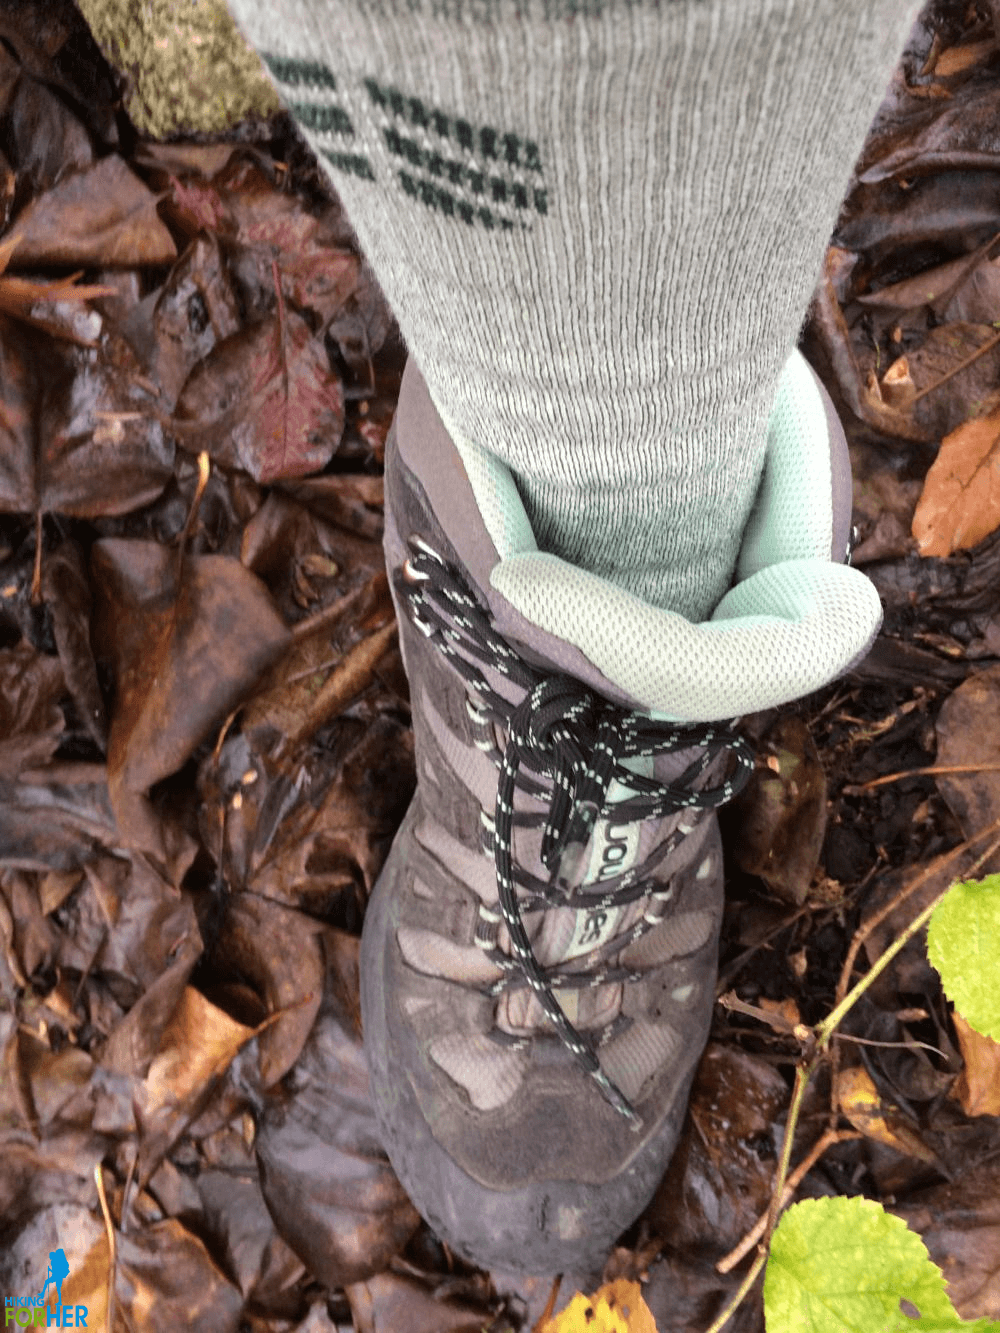 Hiker's calf and shin encased in hiking sock and hiking boot